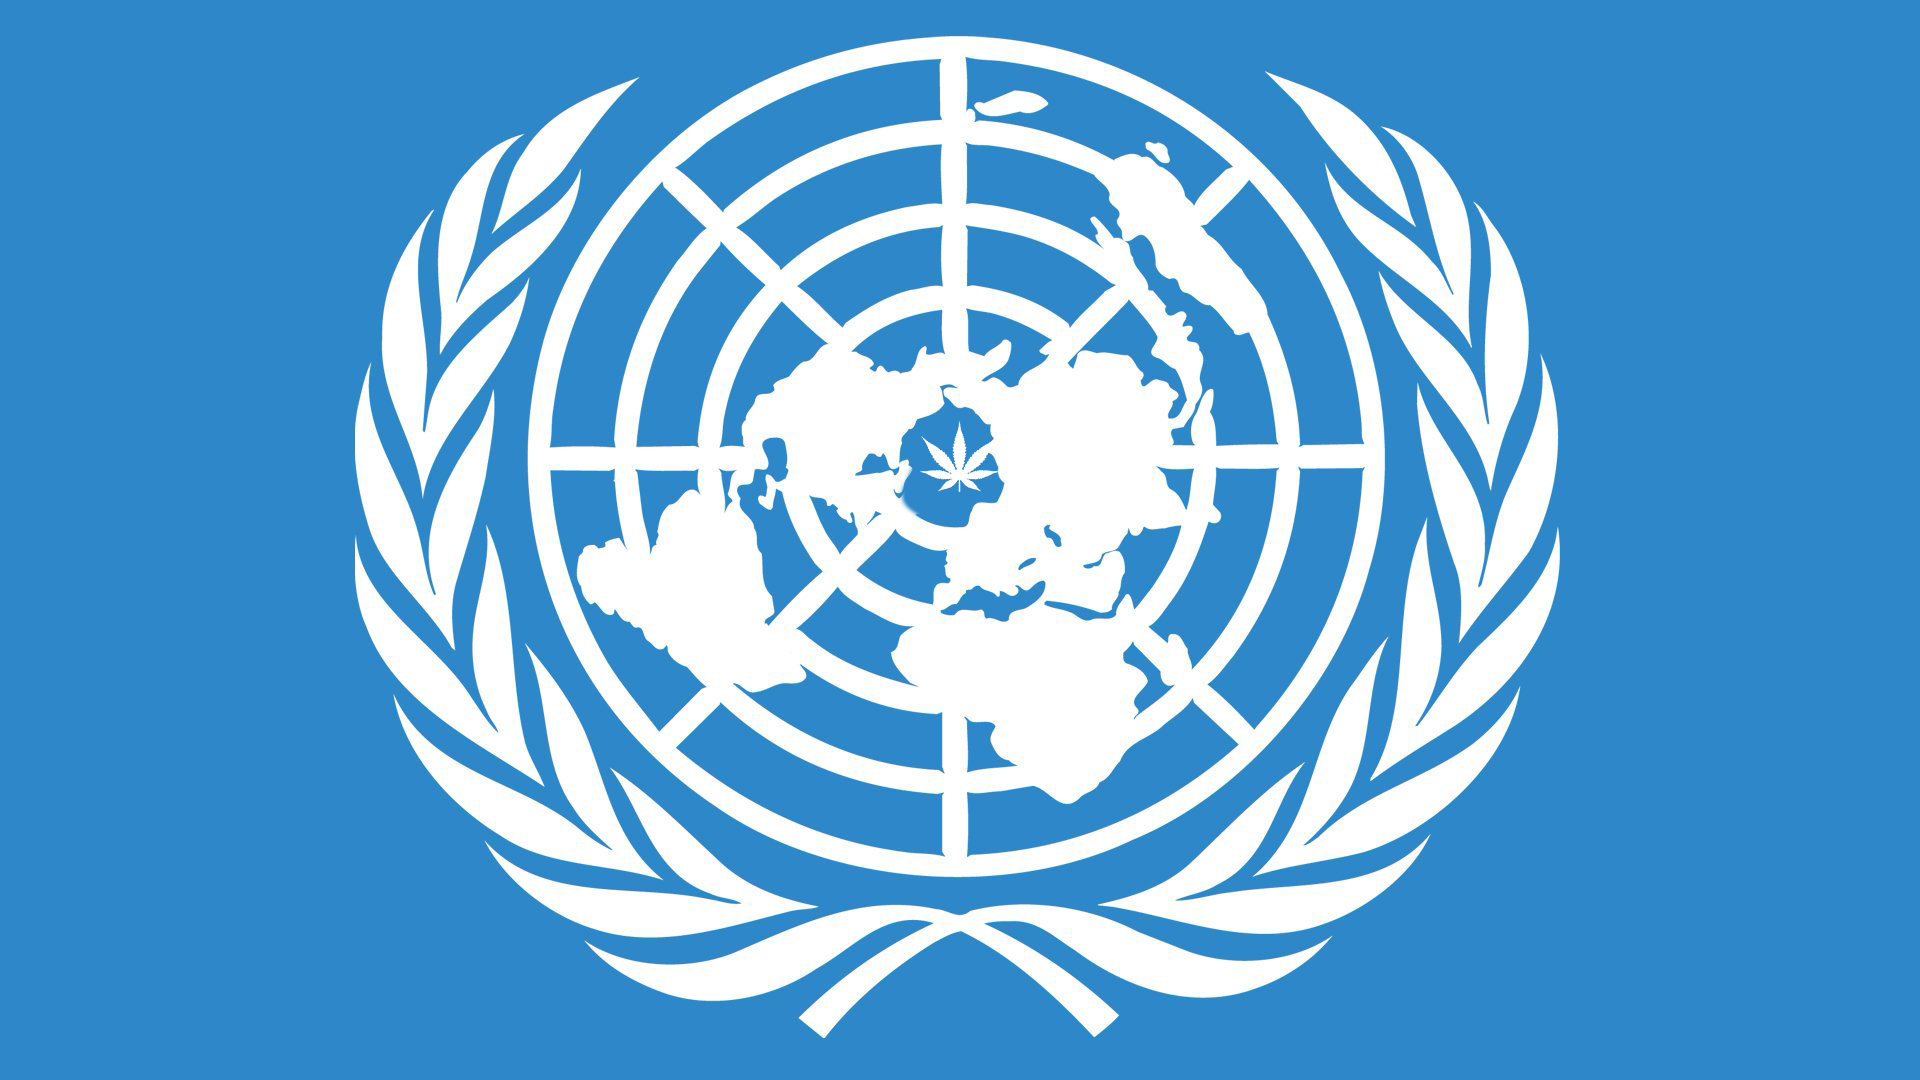 420-United-Nations-legalize-cannabis-hemp